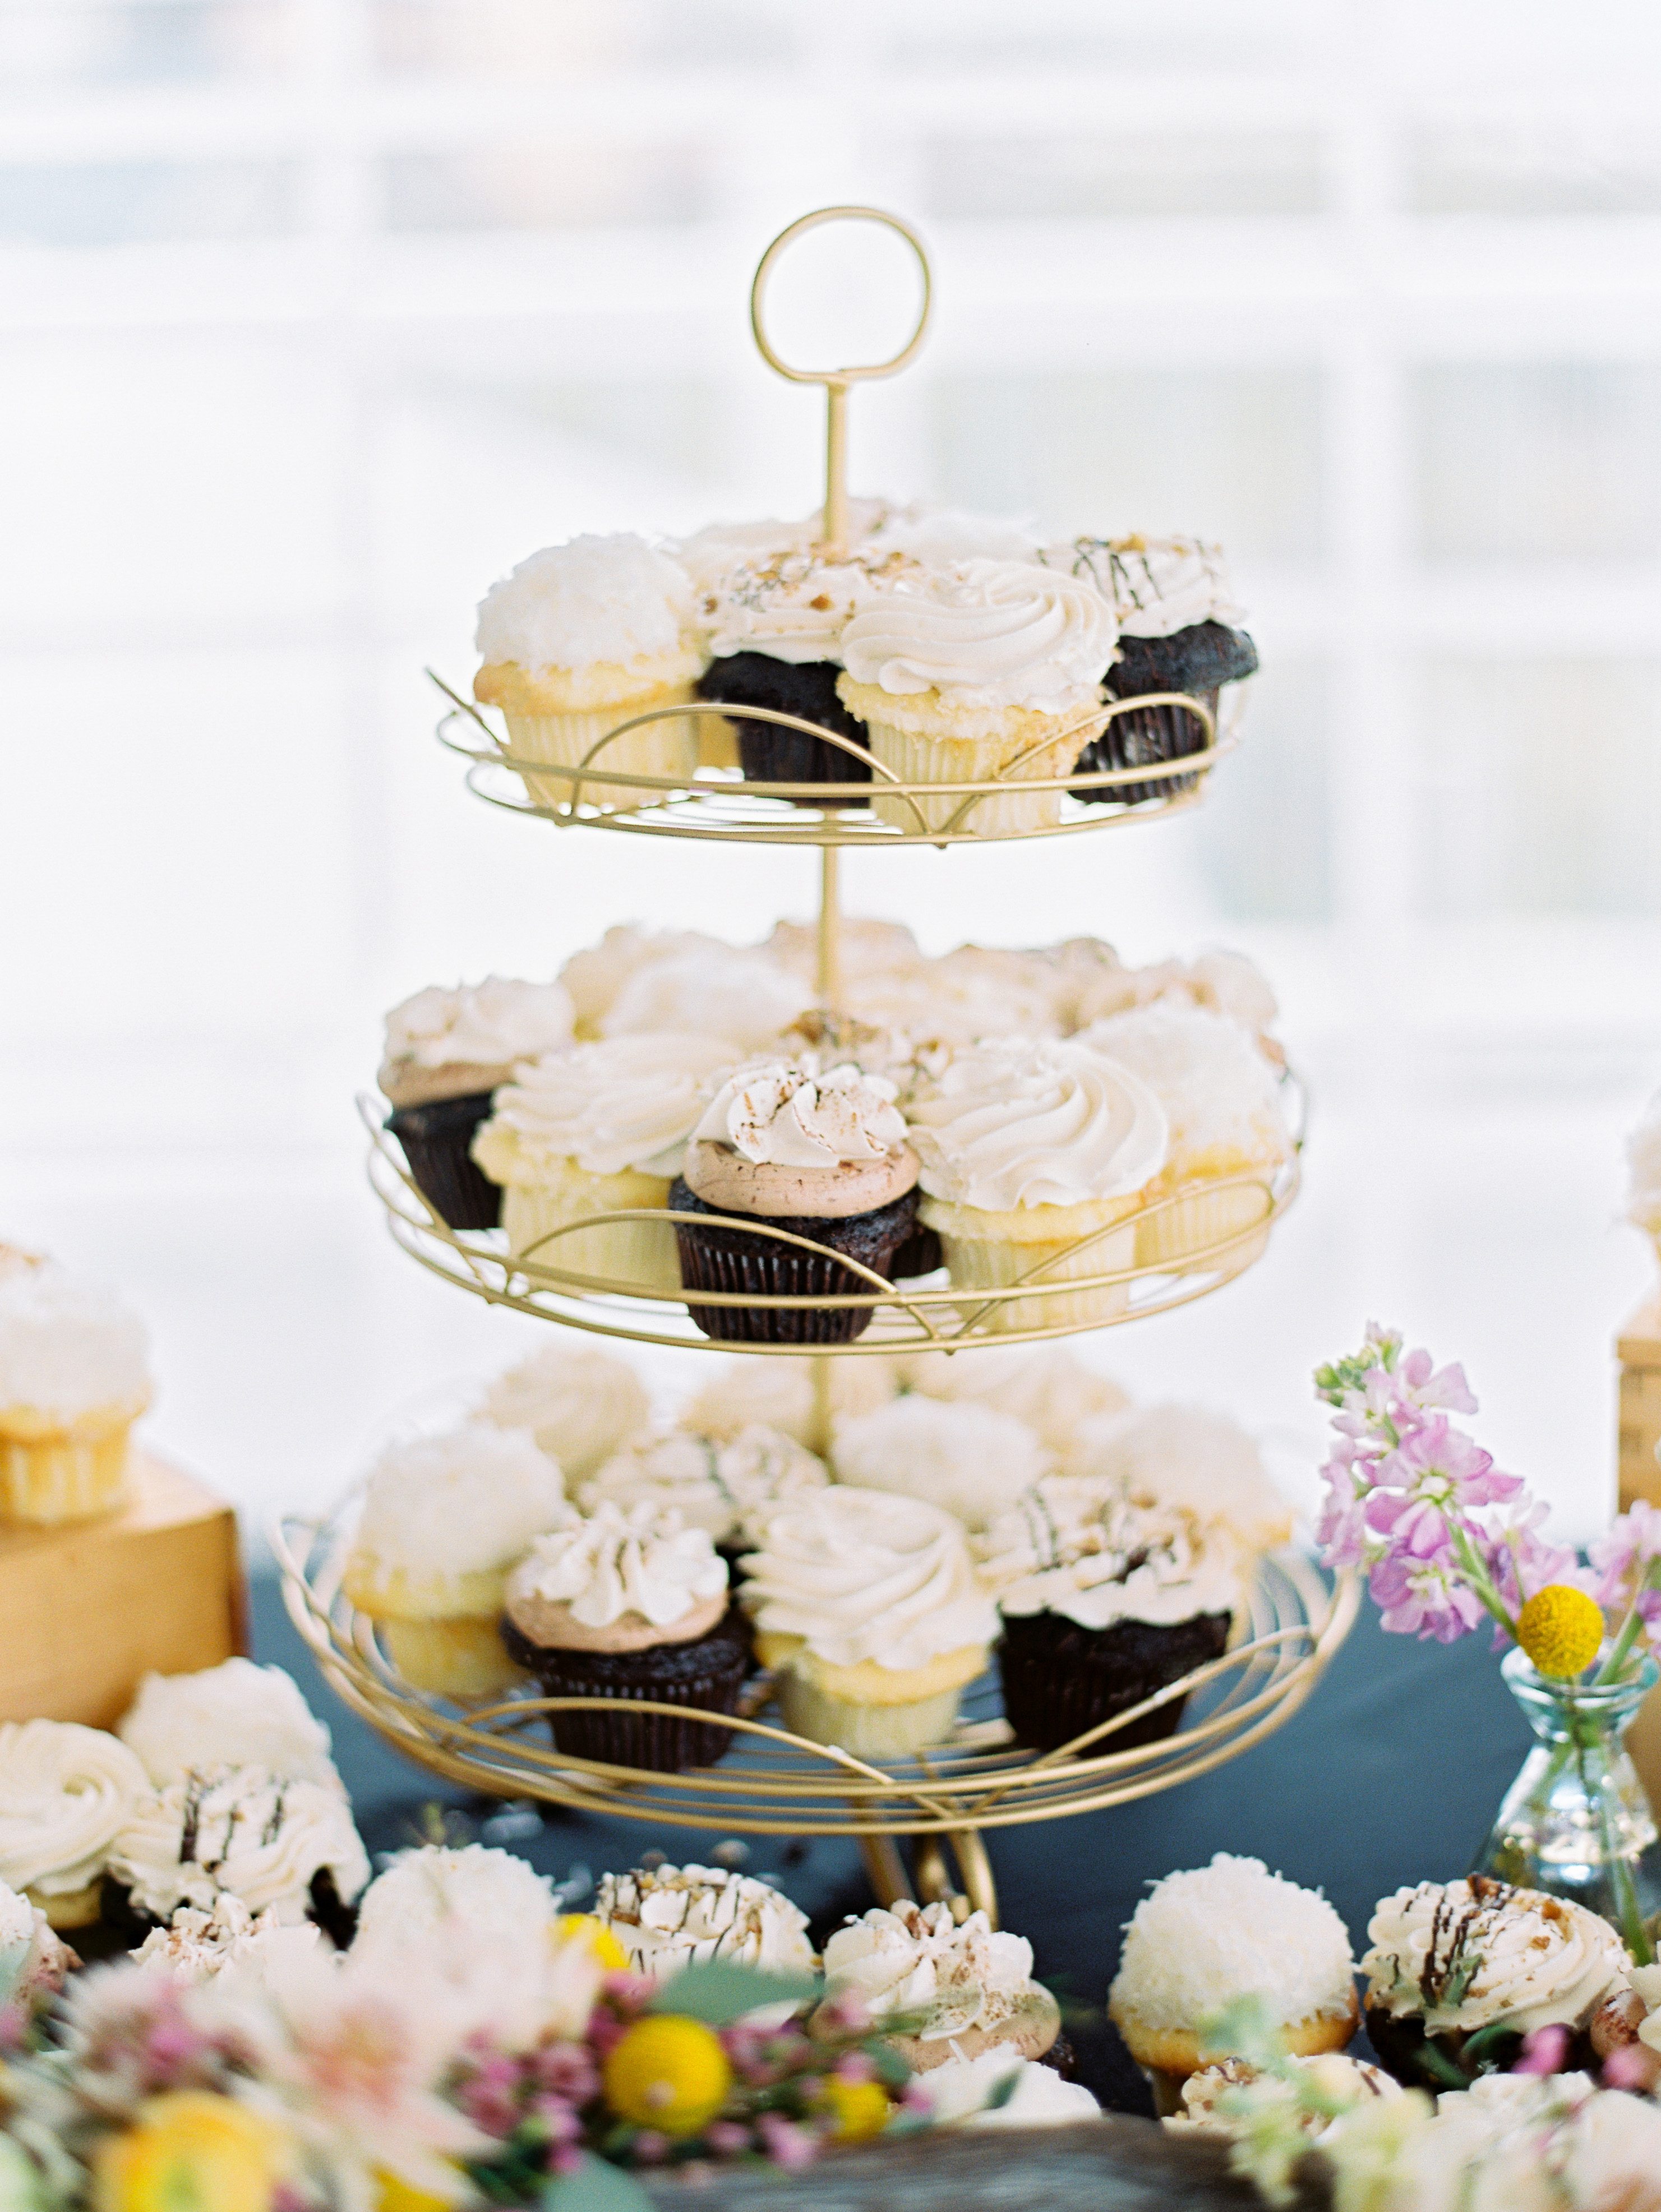 chocolate and vanilla cupcakes on a tier